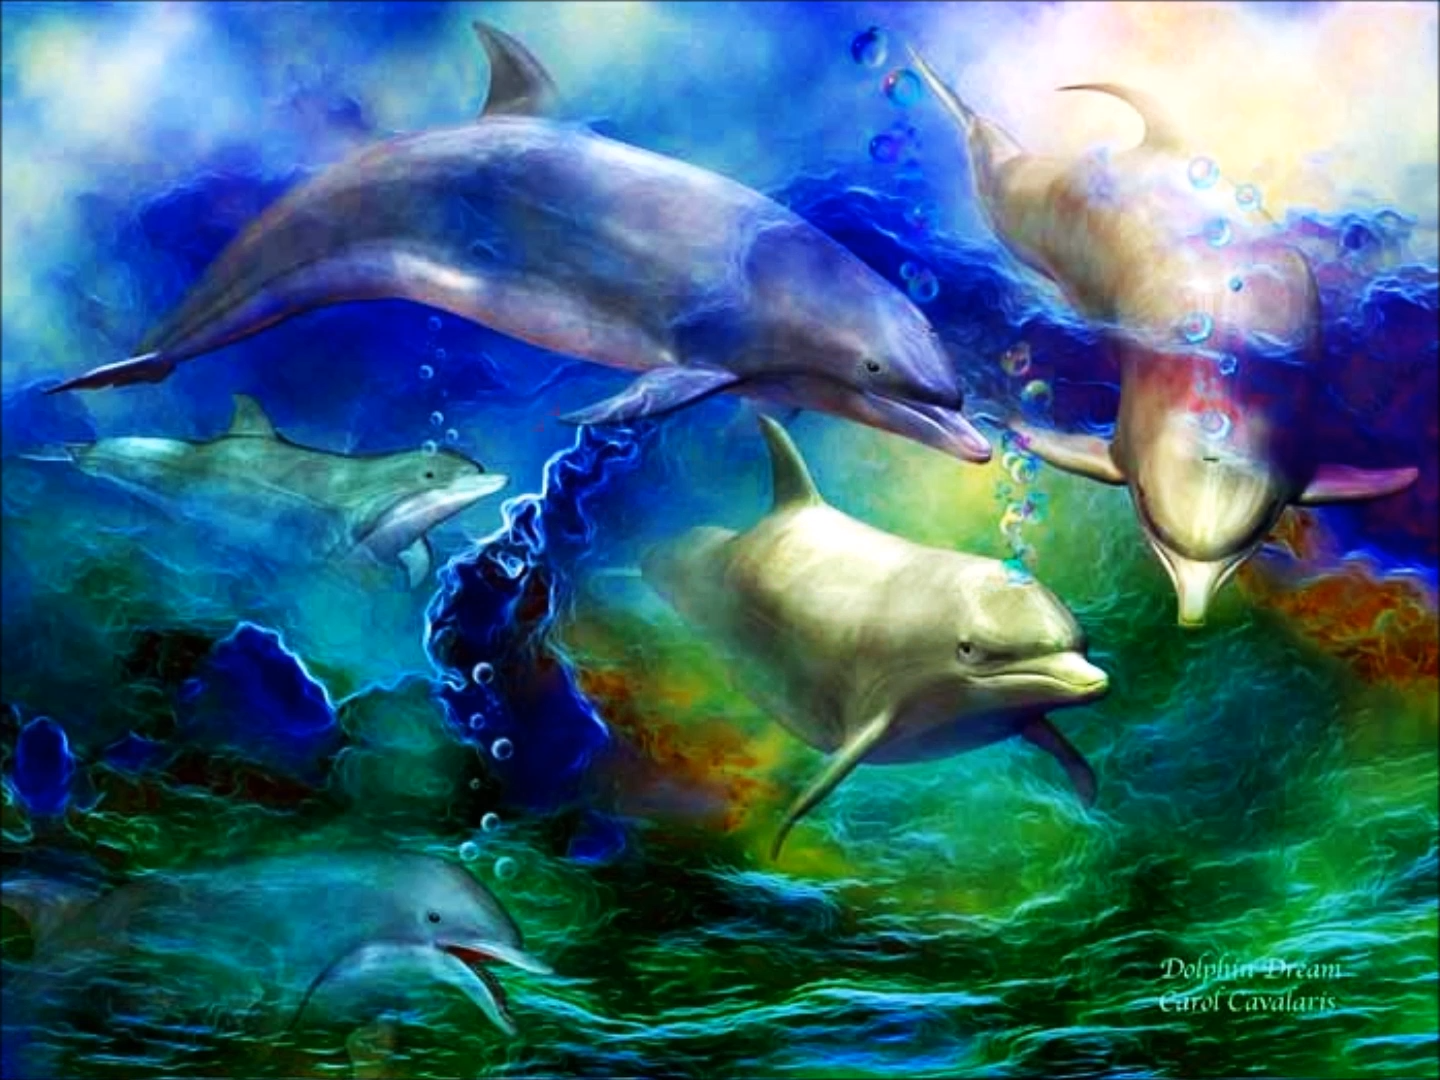 [dolphins_are_celestial_beings.3]